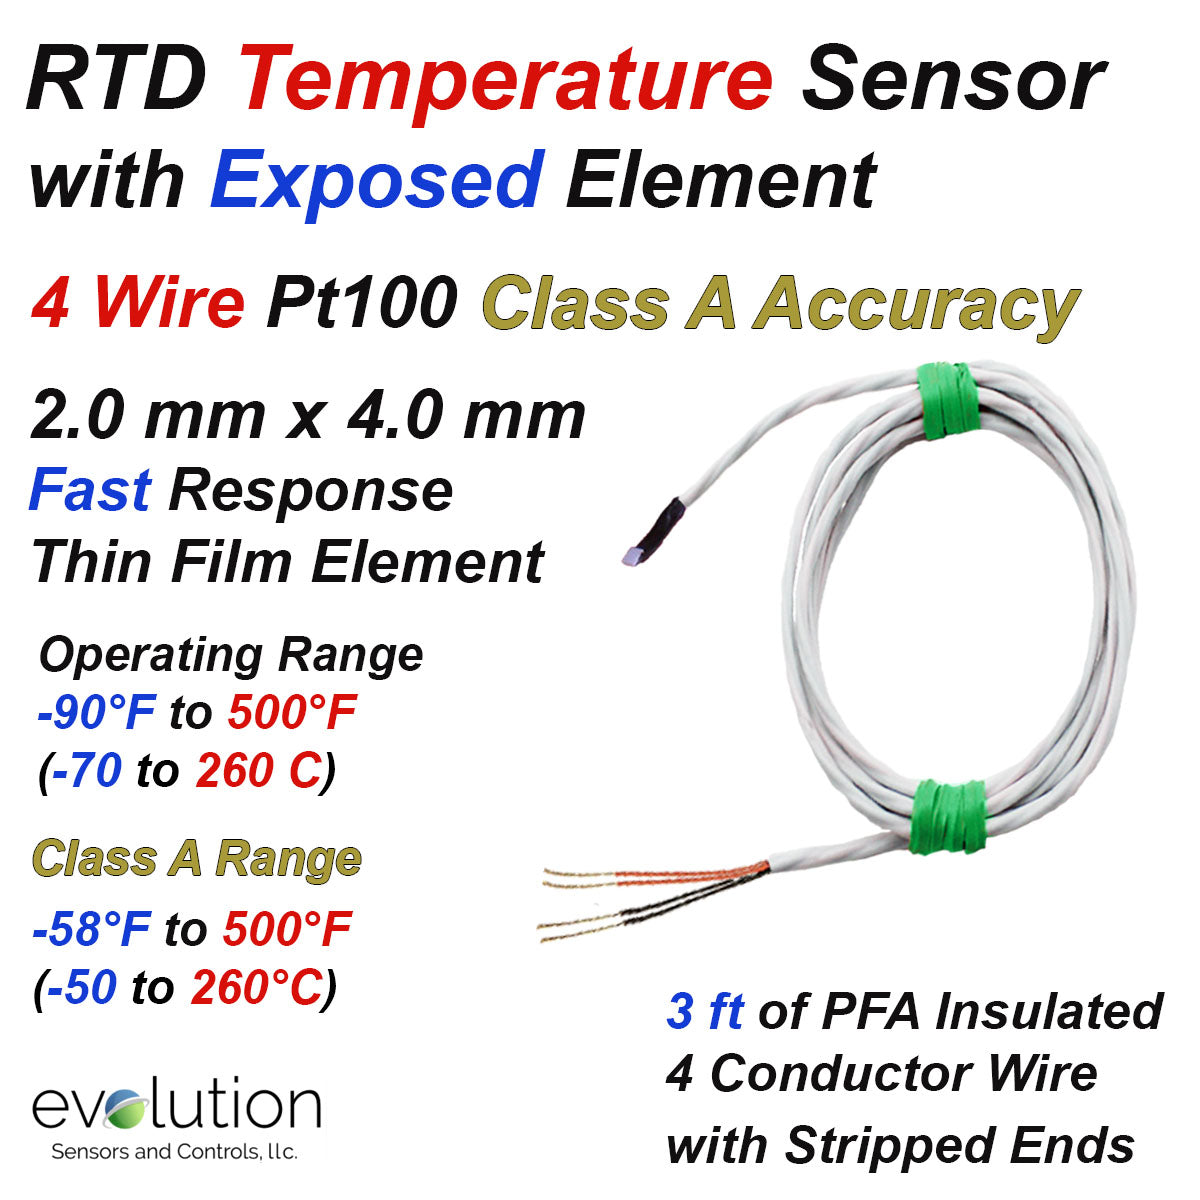 Rtd Sensor Fast Response 2 Mm X 4 Mm Element 4 Wire Pt100